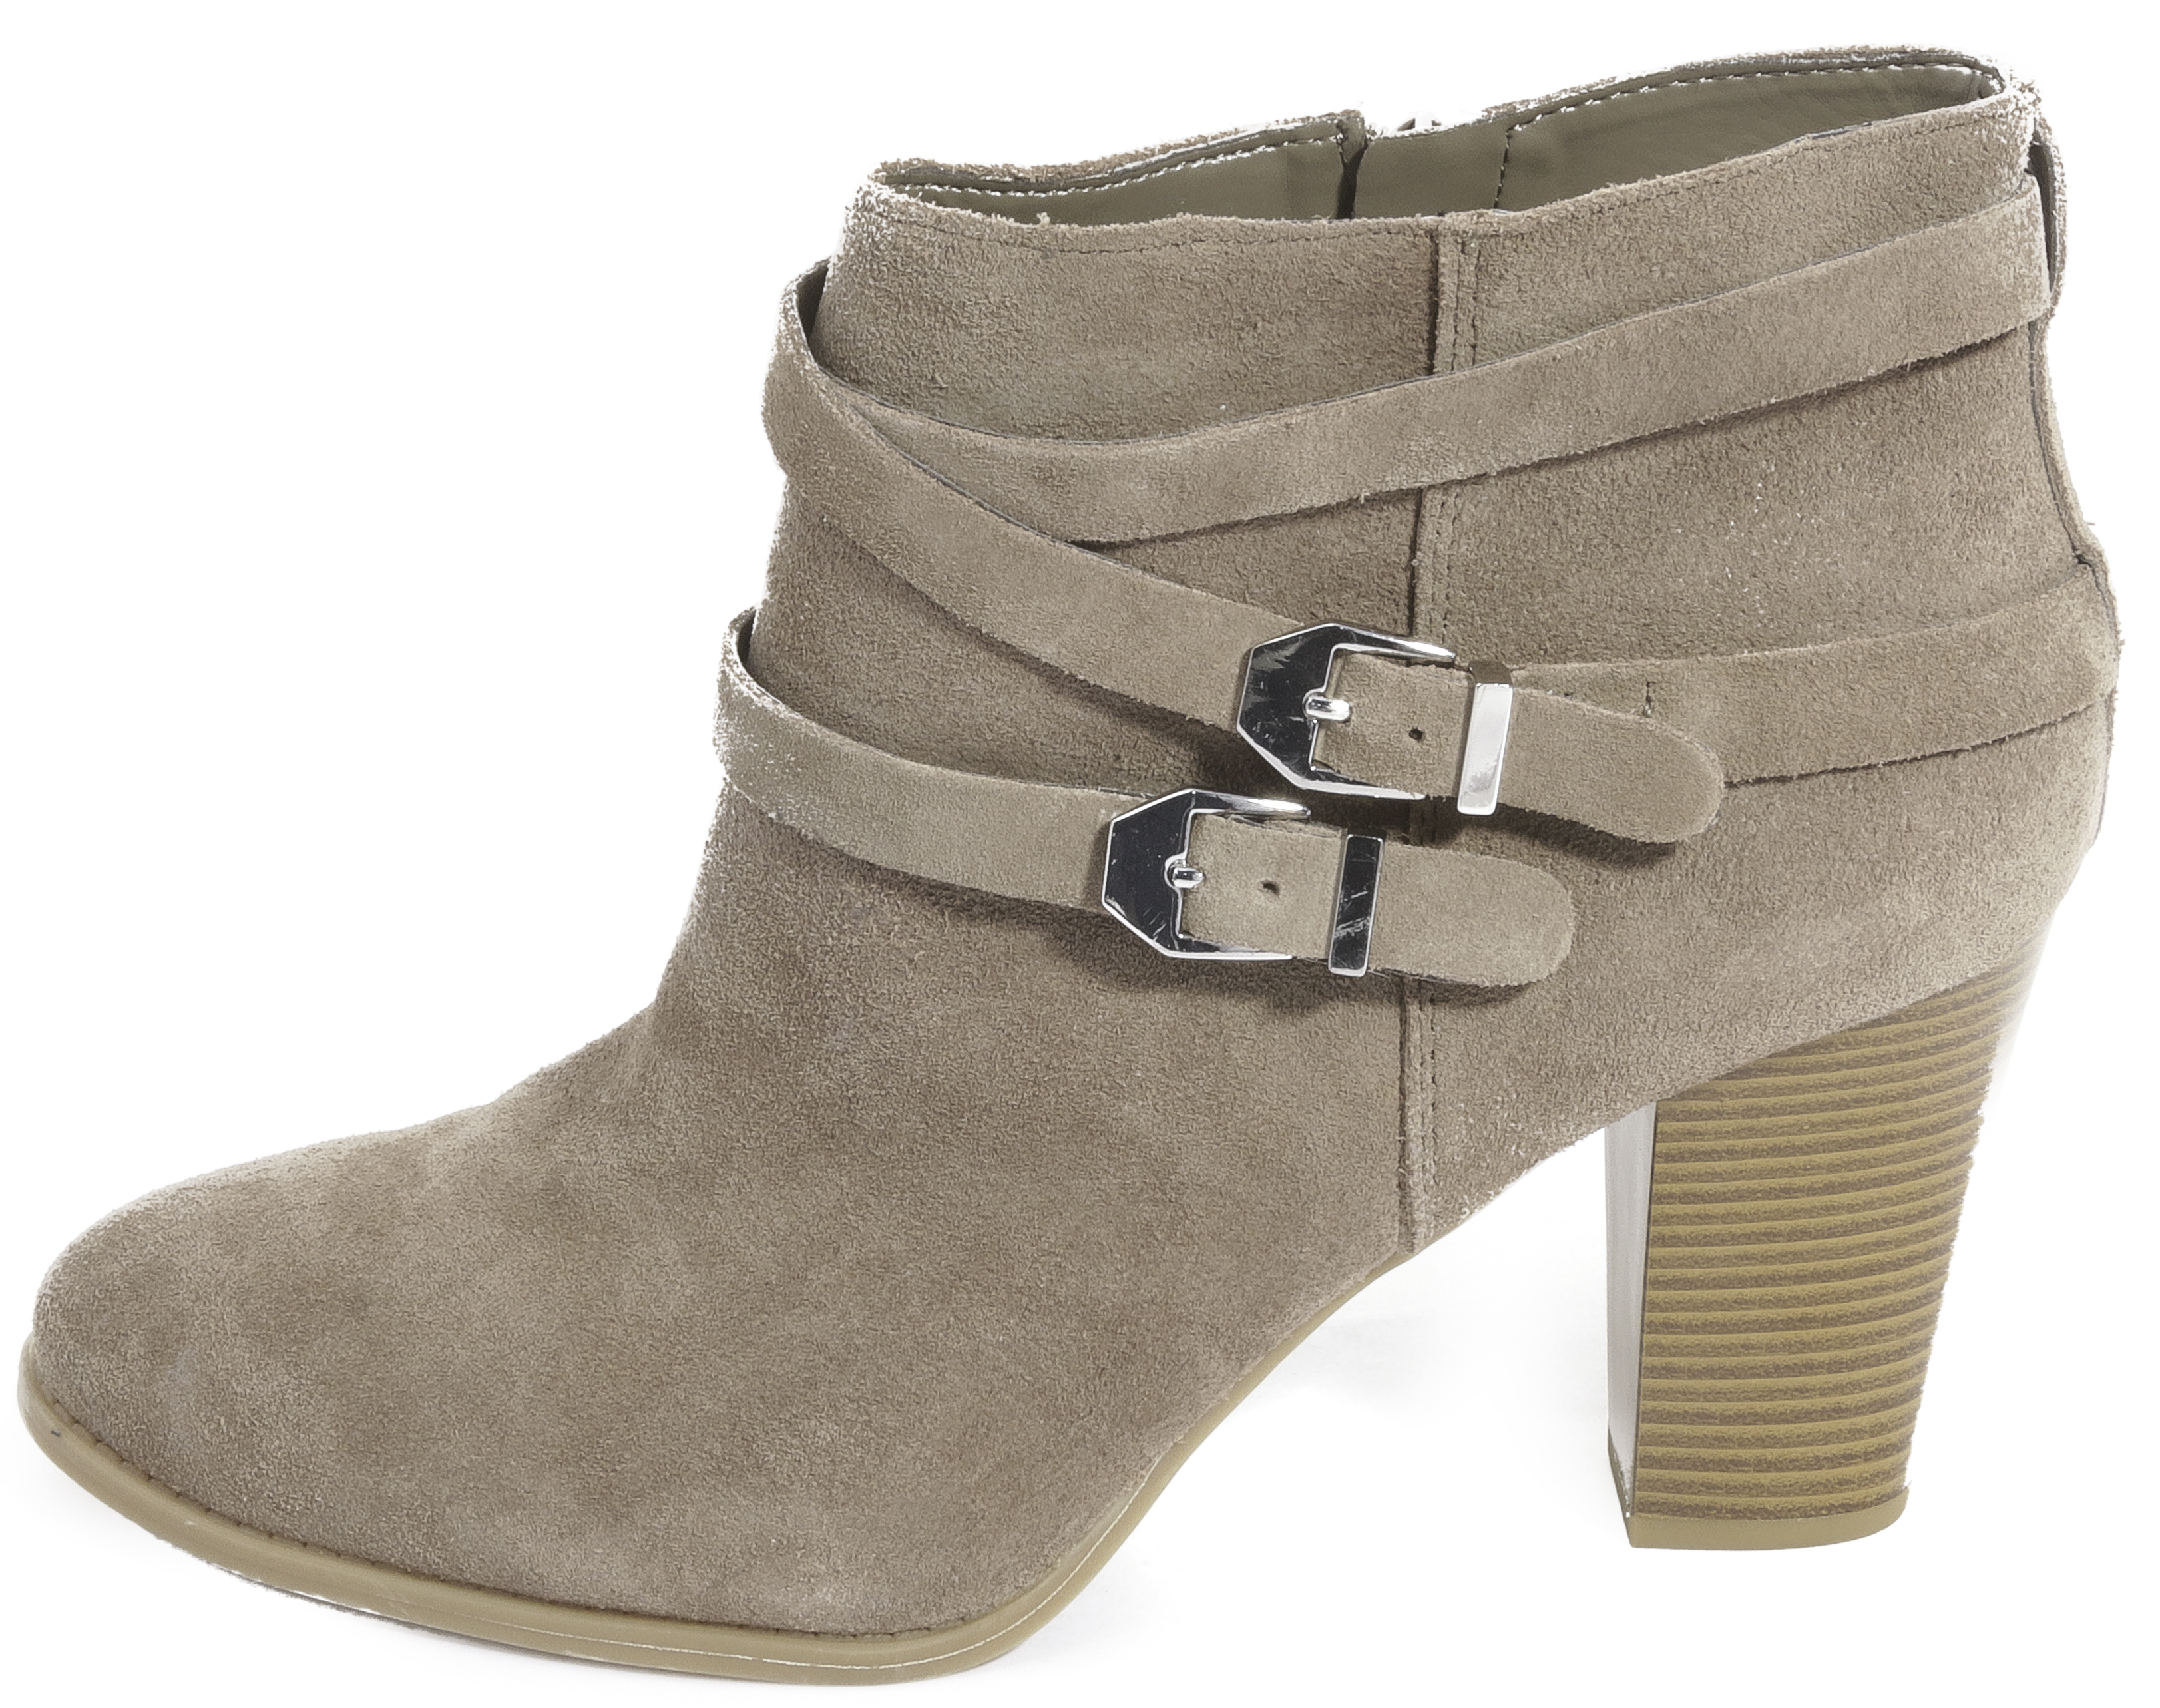 INC International Concepts Womens JAYDIE Suede Round Toe Warm Taupe Size 8.5 M